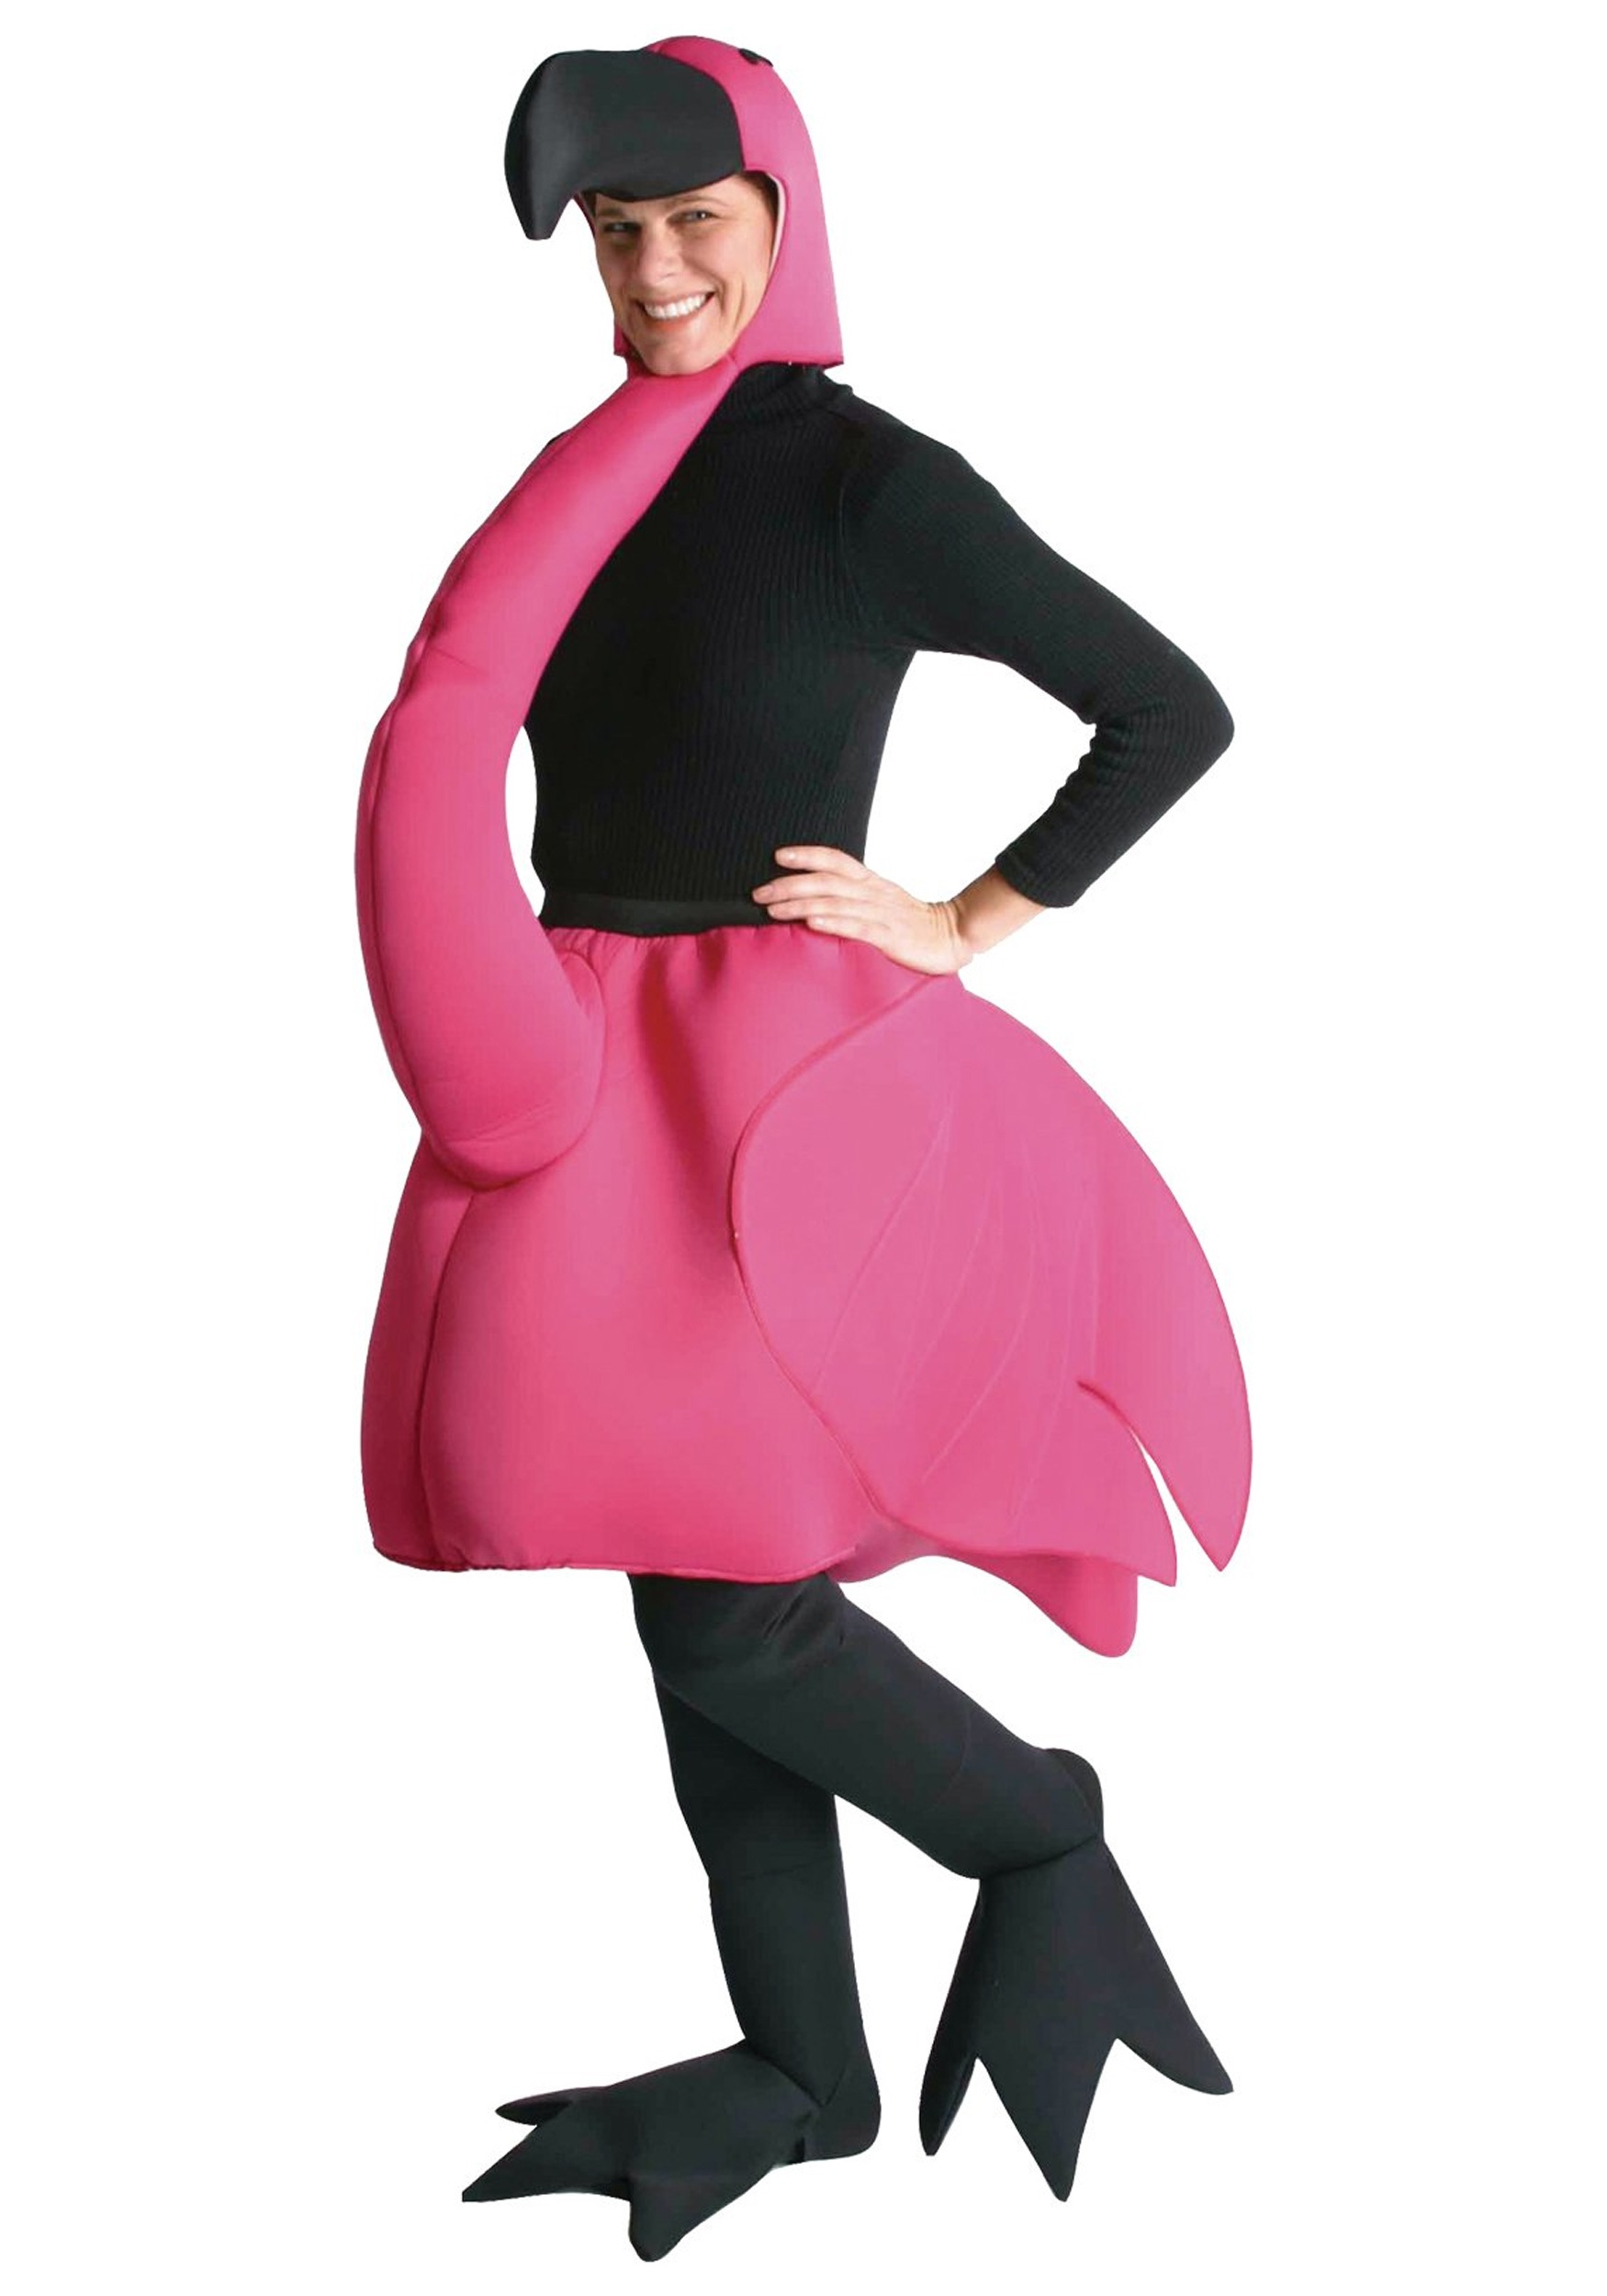 Flamingo Costume  sc 1 st  Halloween Costumes & Pink Flamingo Costumes for Adults u0026 Kids - HalloweenCostumes.com